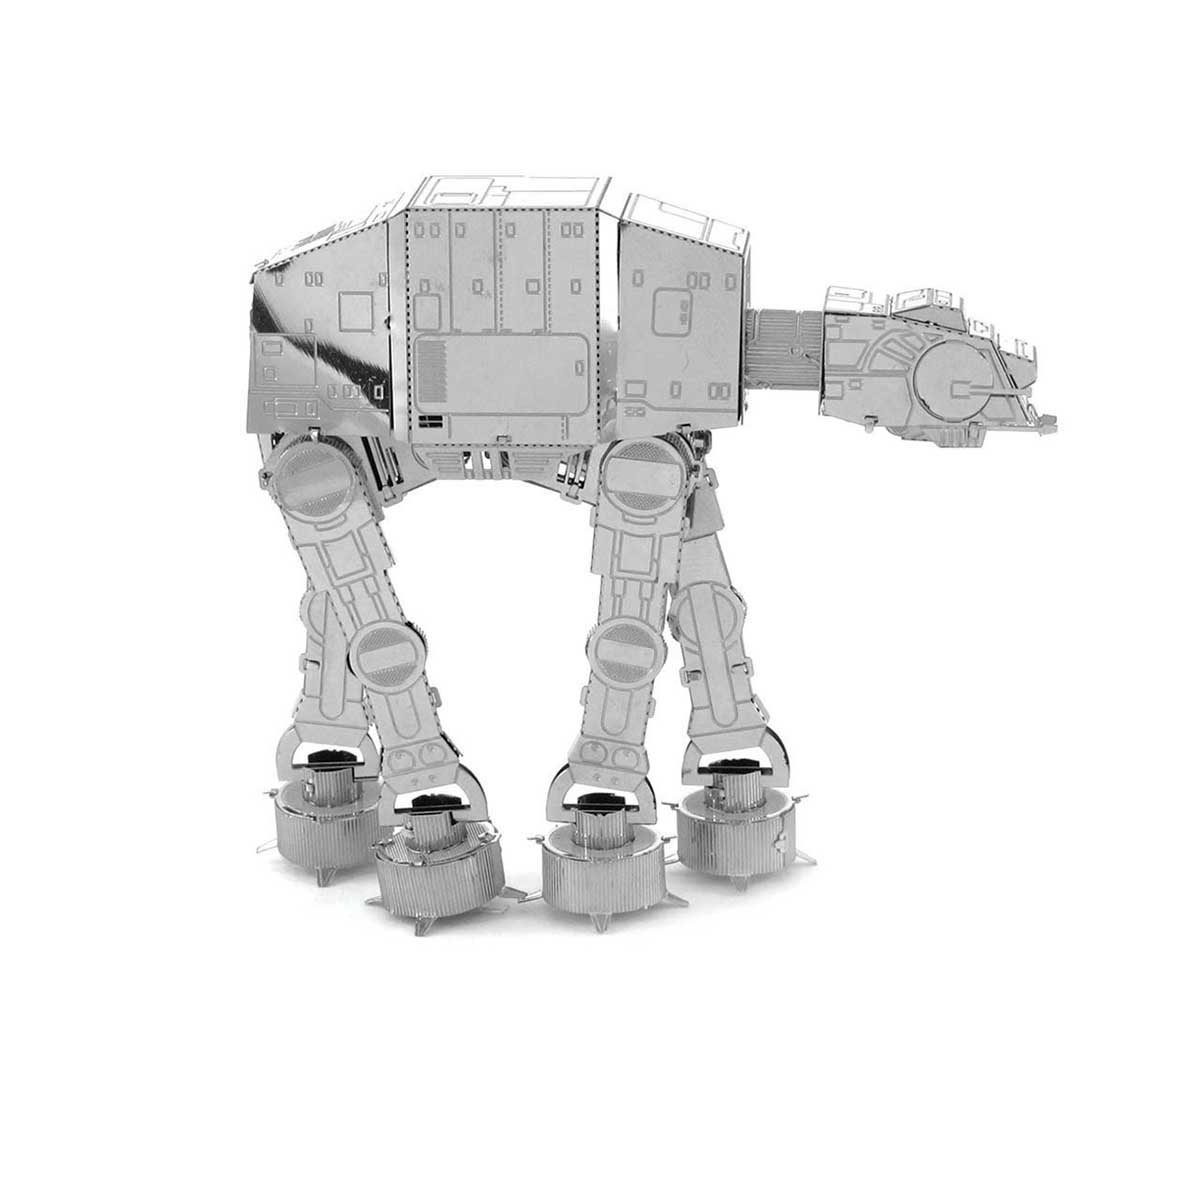 AT-AT Movies / Books / TV 3D Puzzle